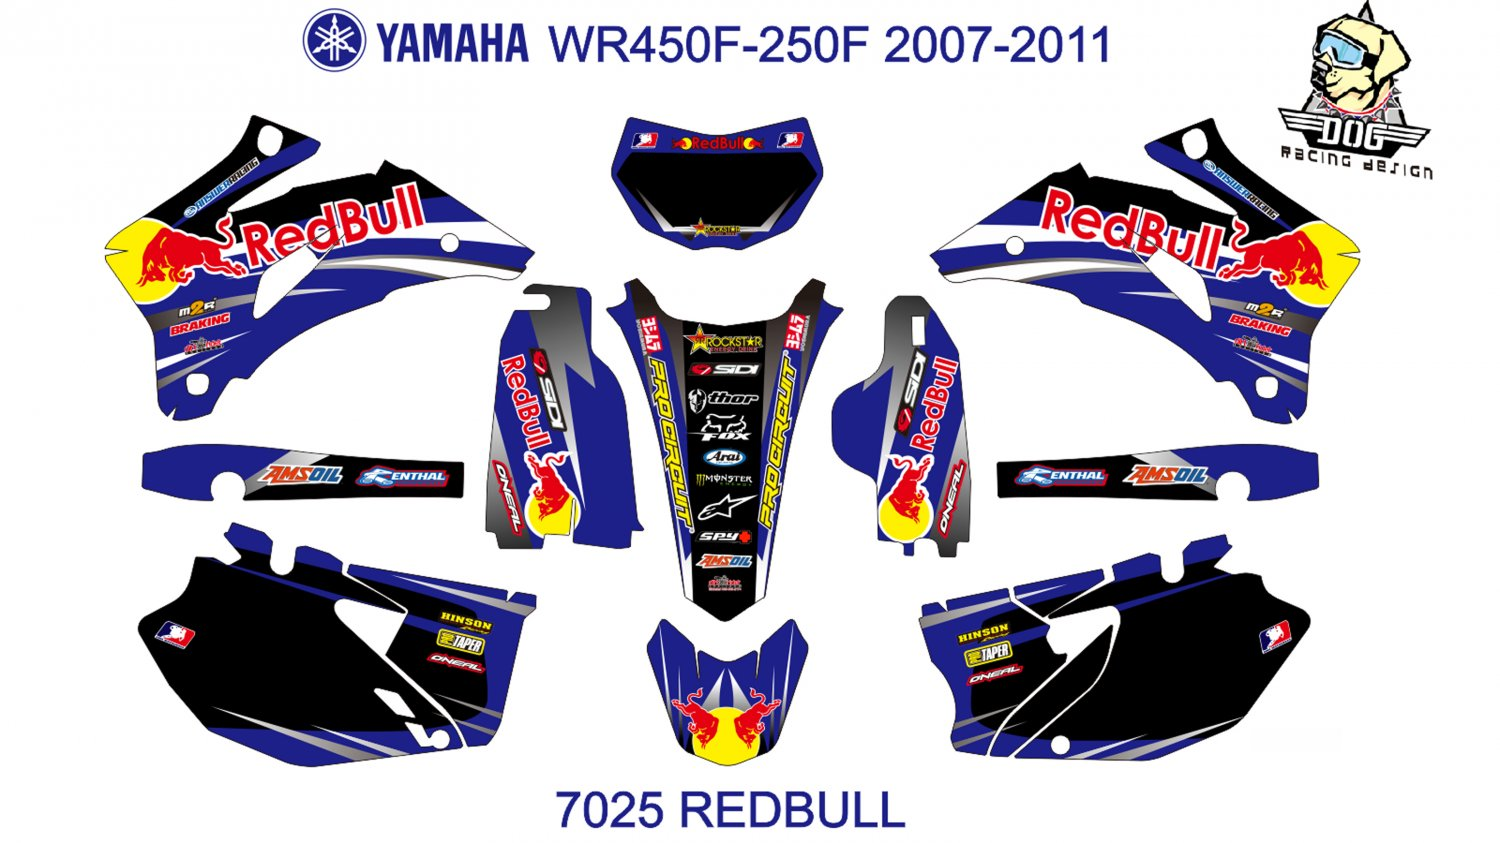 YAMAHA WR450F-250F 2007-2011 GRAPHIC DECAL KIT CODE.7025